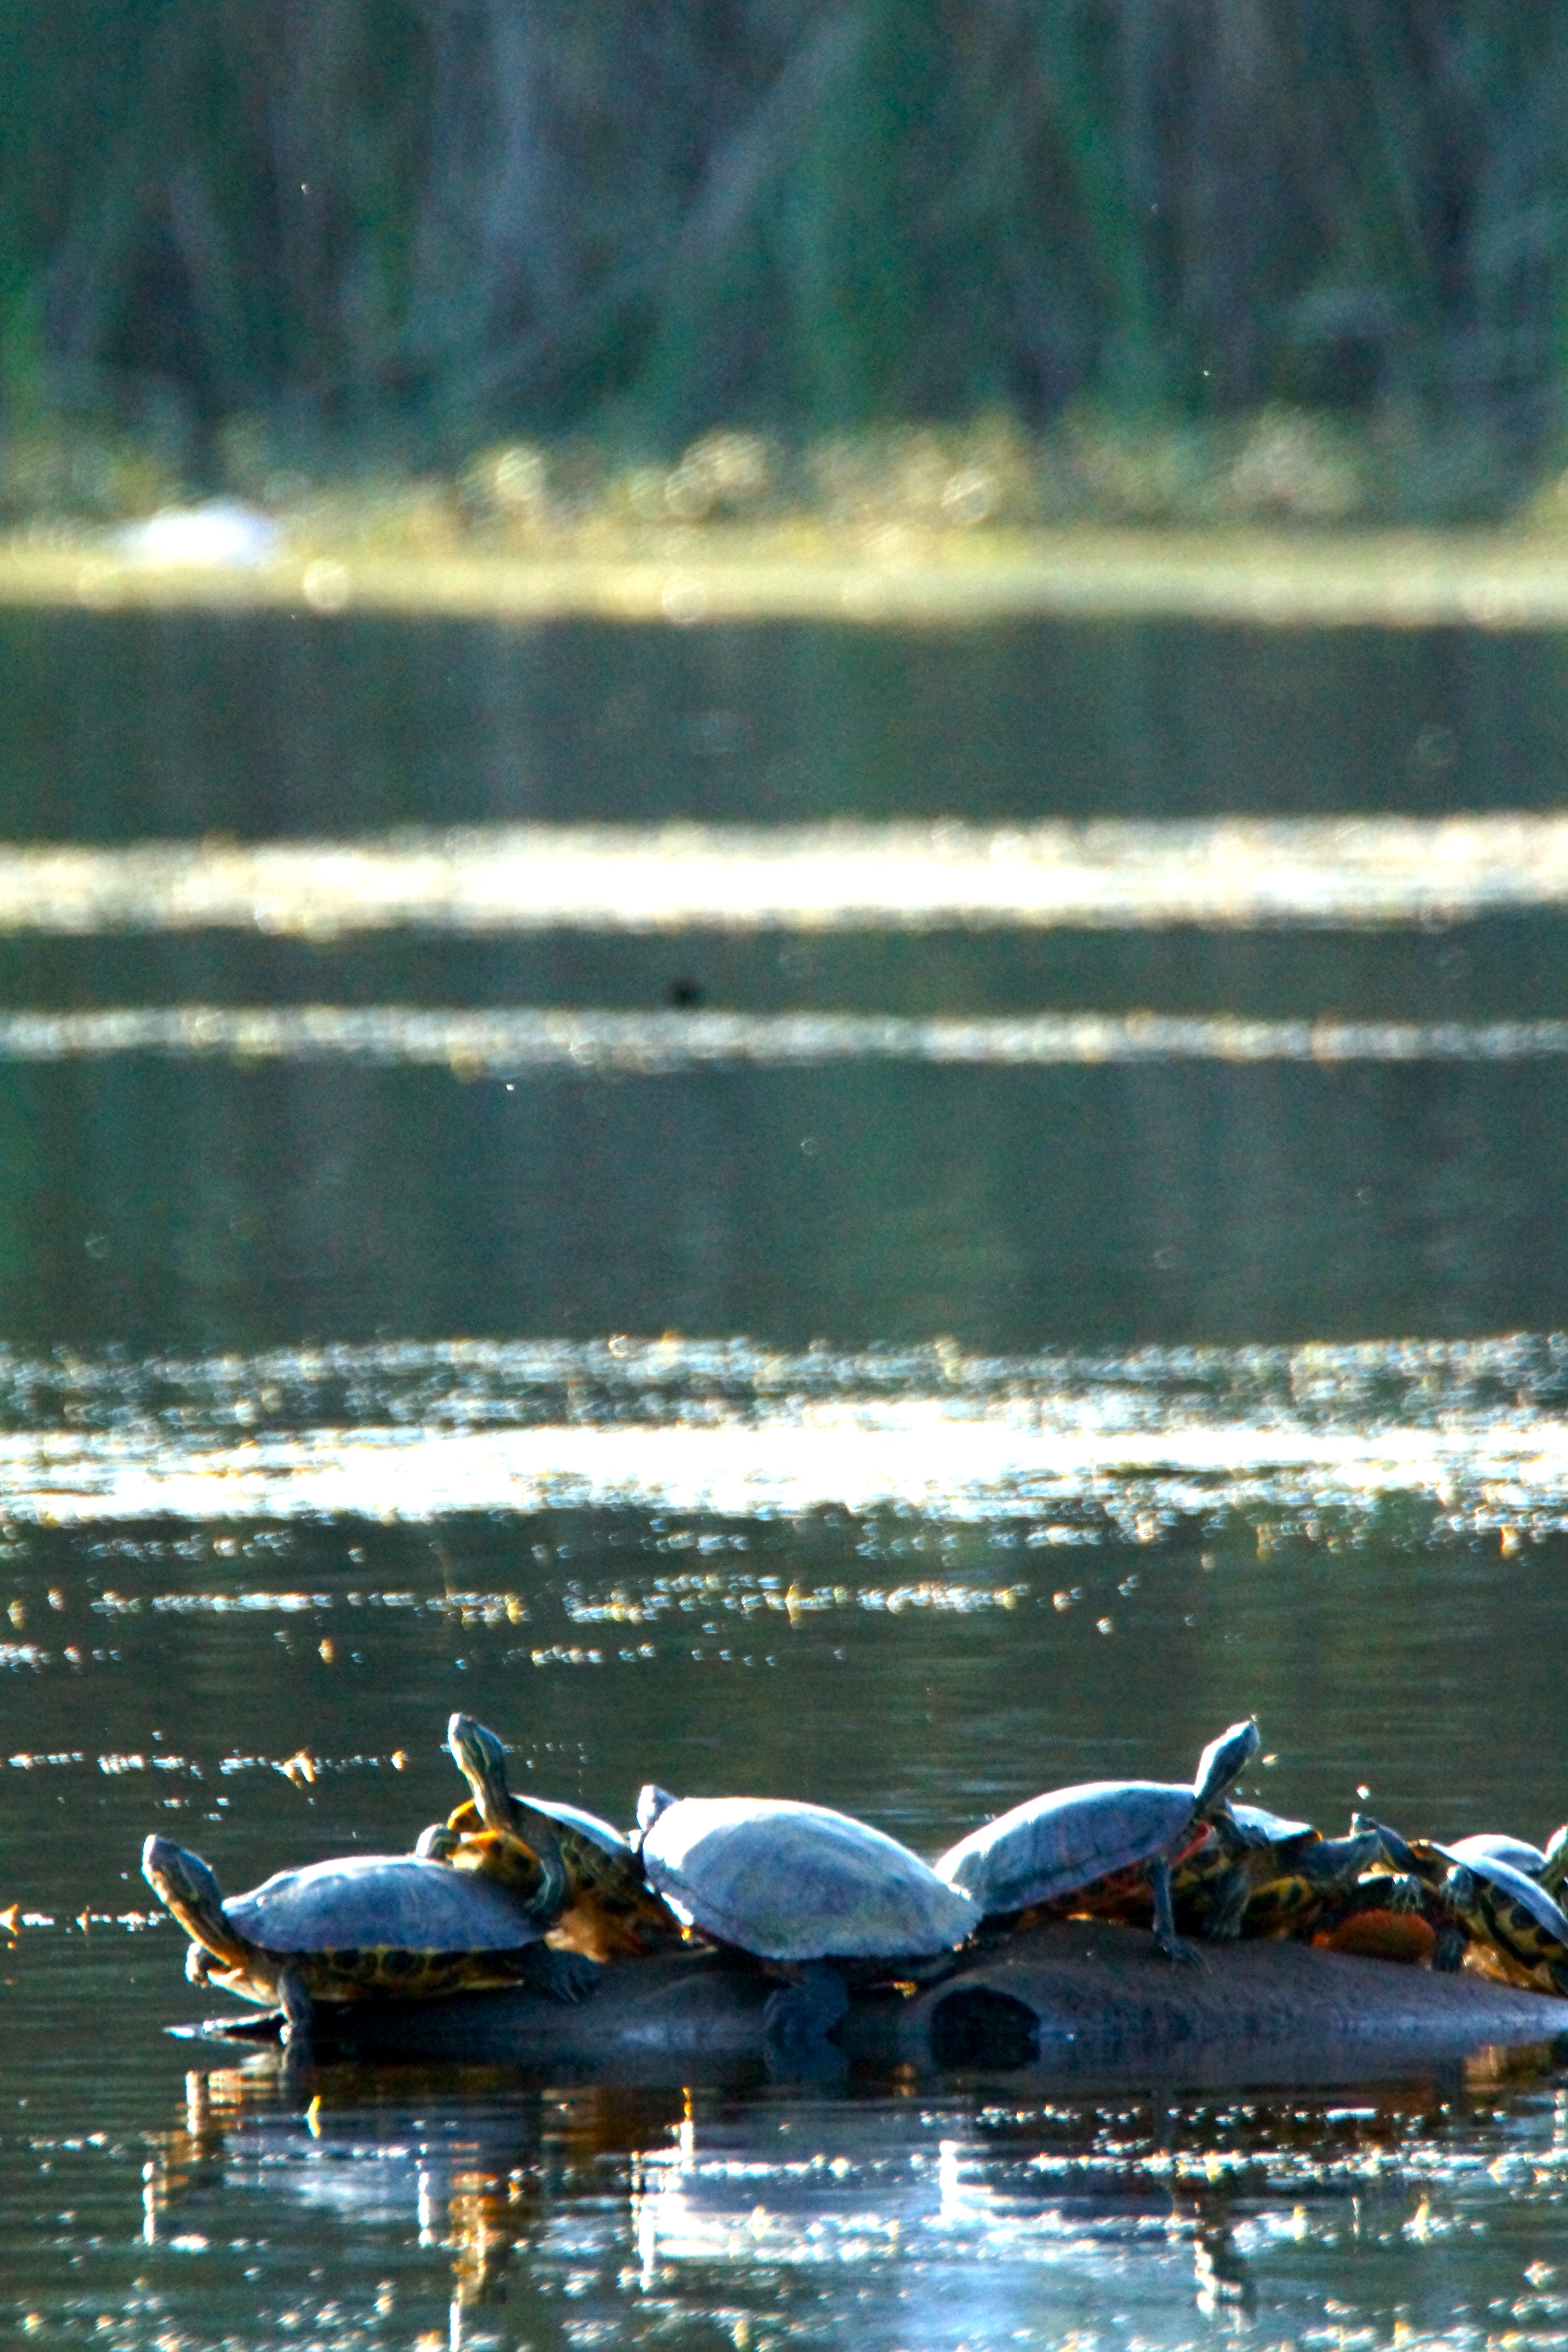 Overcrowding at Turtle Island - Gunners Lake Germantown MD, Boat, Outdoor, Vehicle, Water, HQ Photo